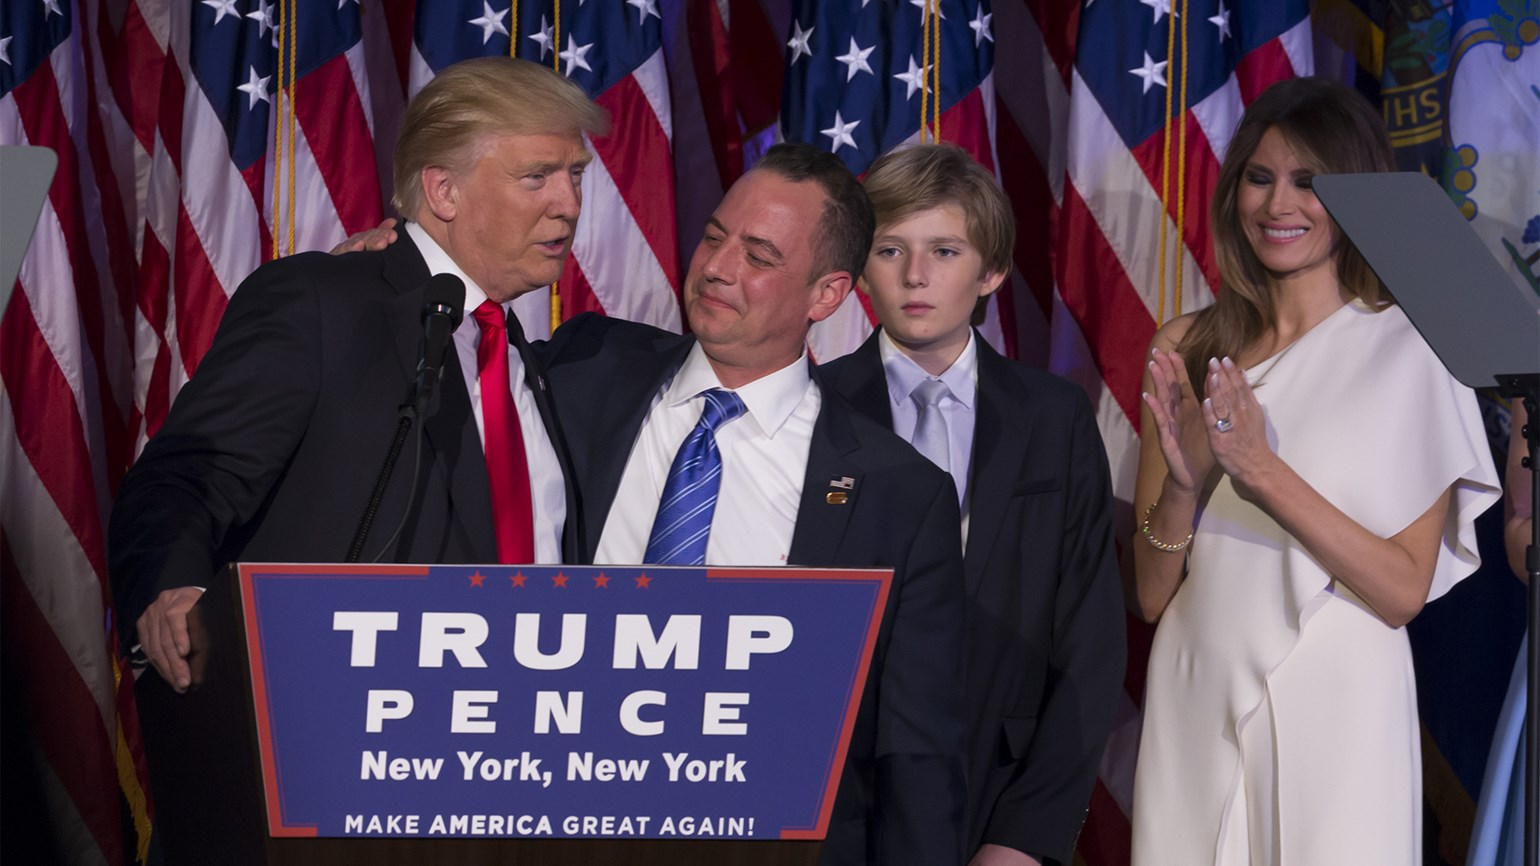 Donald Trump and Reince Priebus